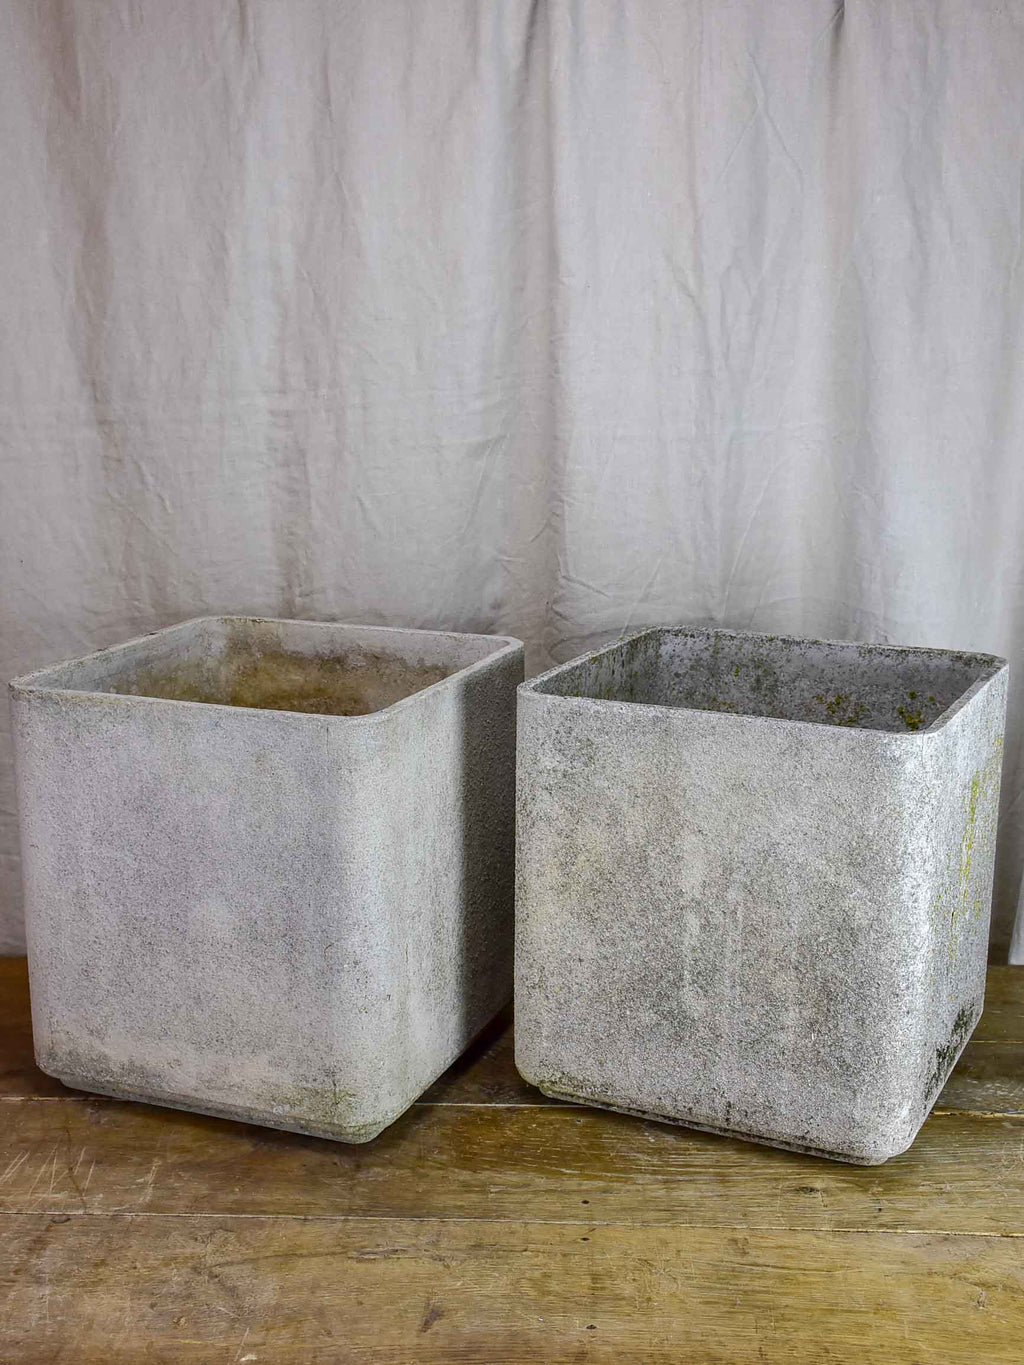 Pair of large square Willy Guhl garden planters